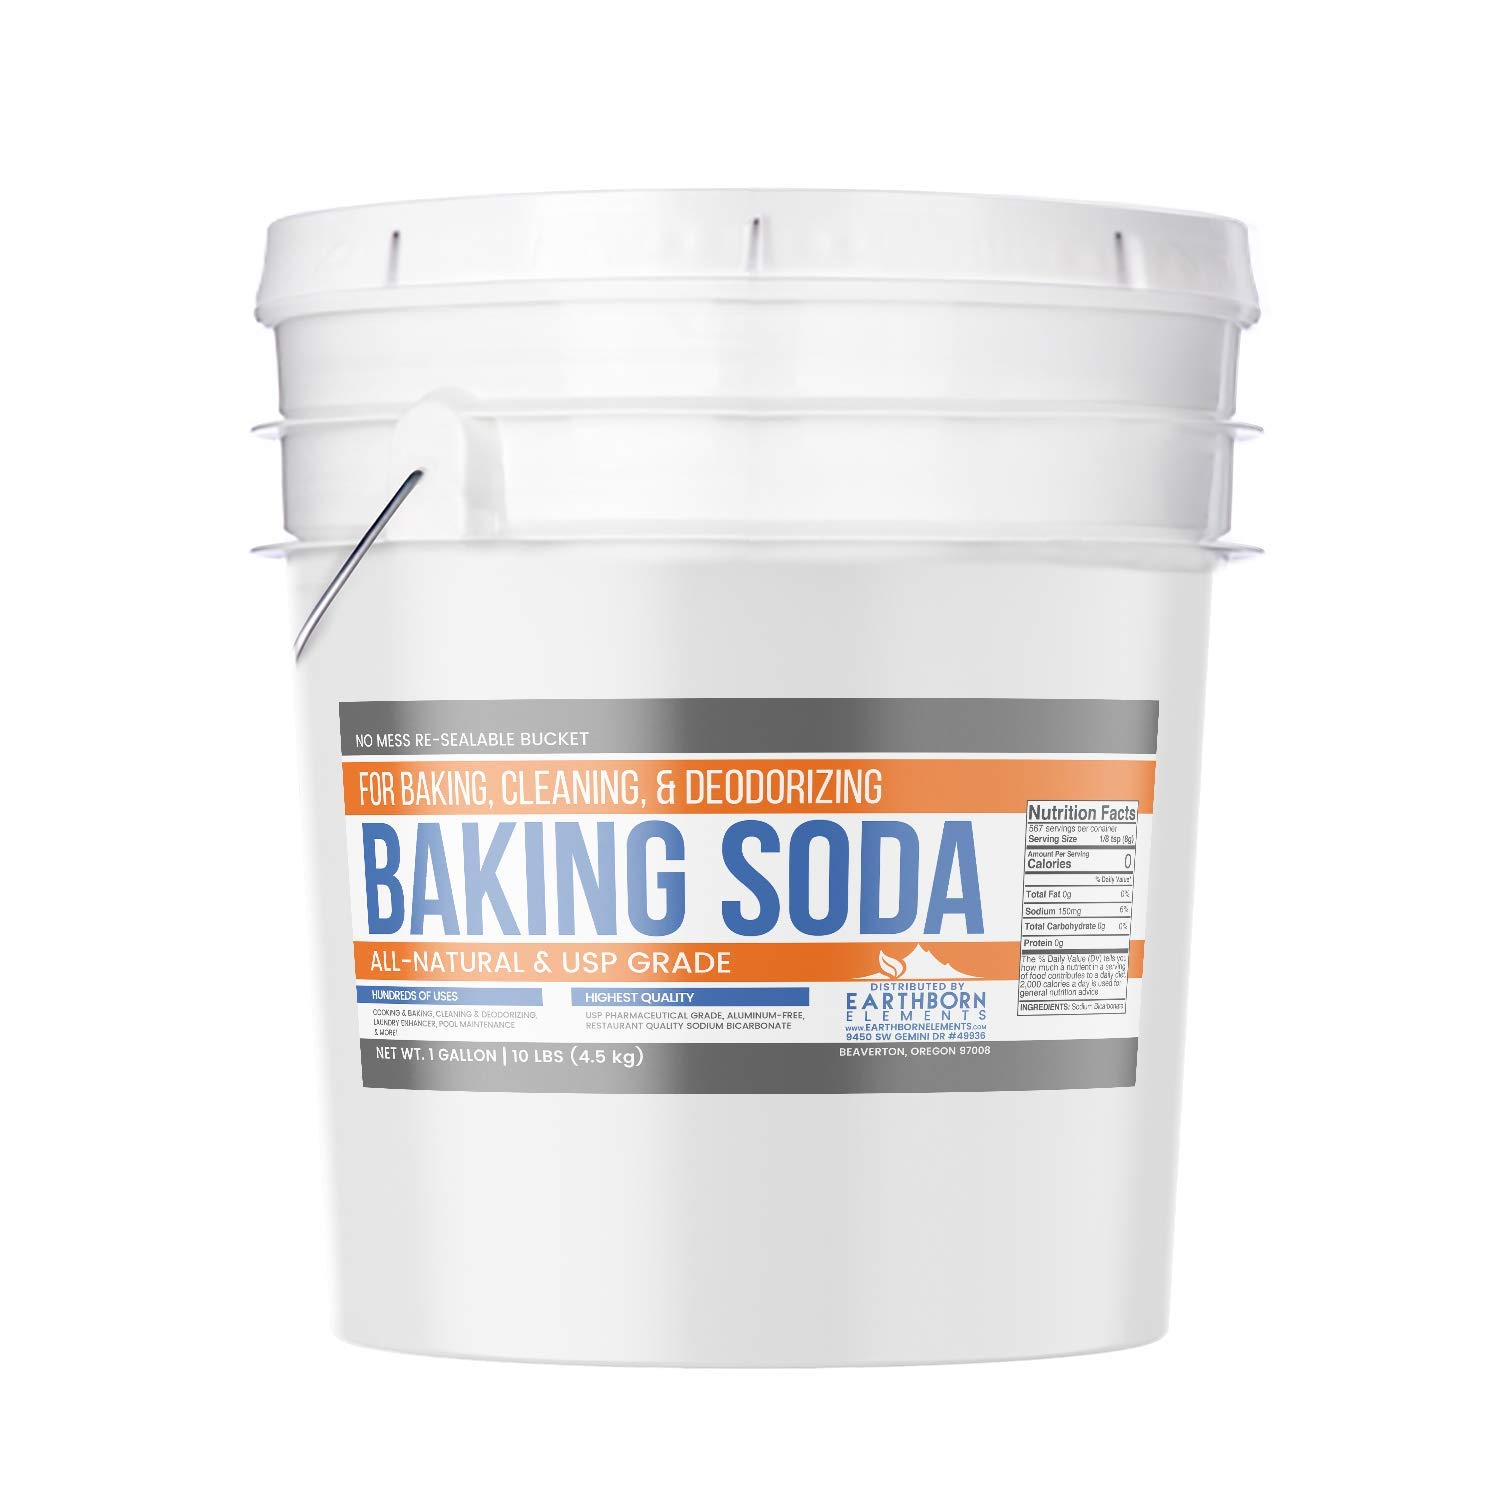 Baking Soda (1 gallon (10 lb)) by Earthborn Elements, All-Natural, USP Pharmaceutical Grade, for Cooking, Baking, Cleaning, Deodorizing, & More